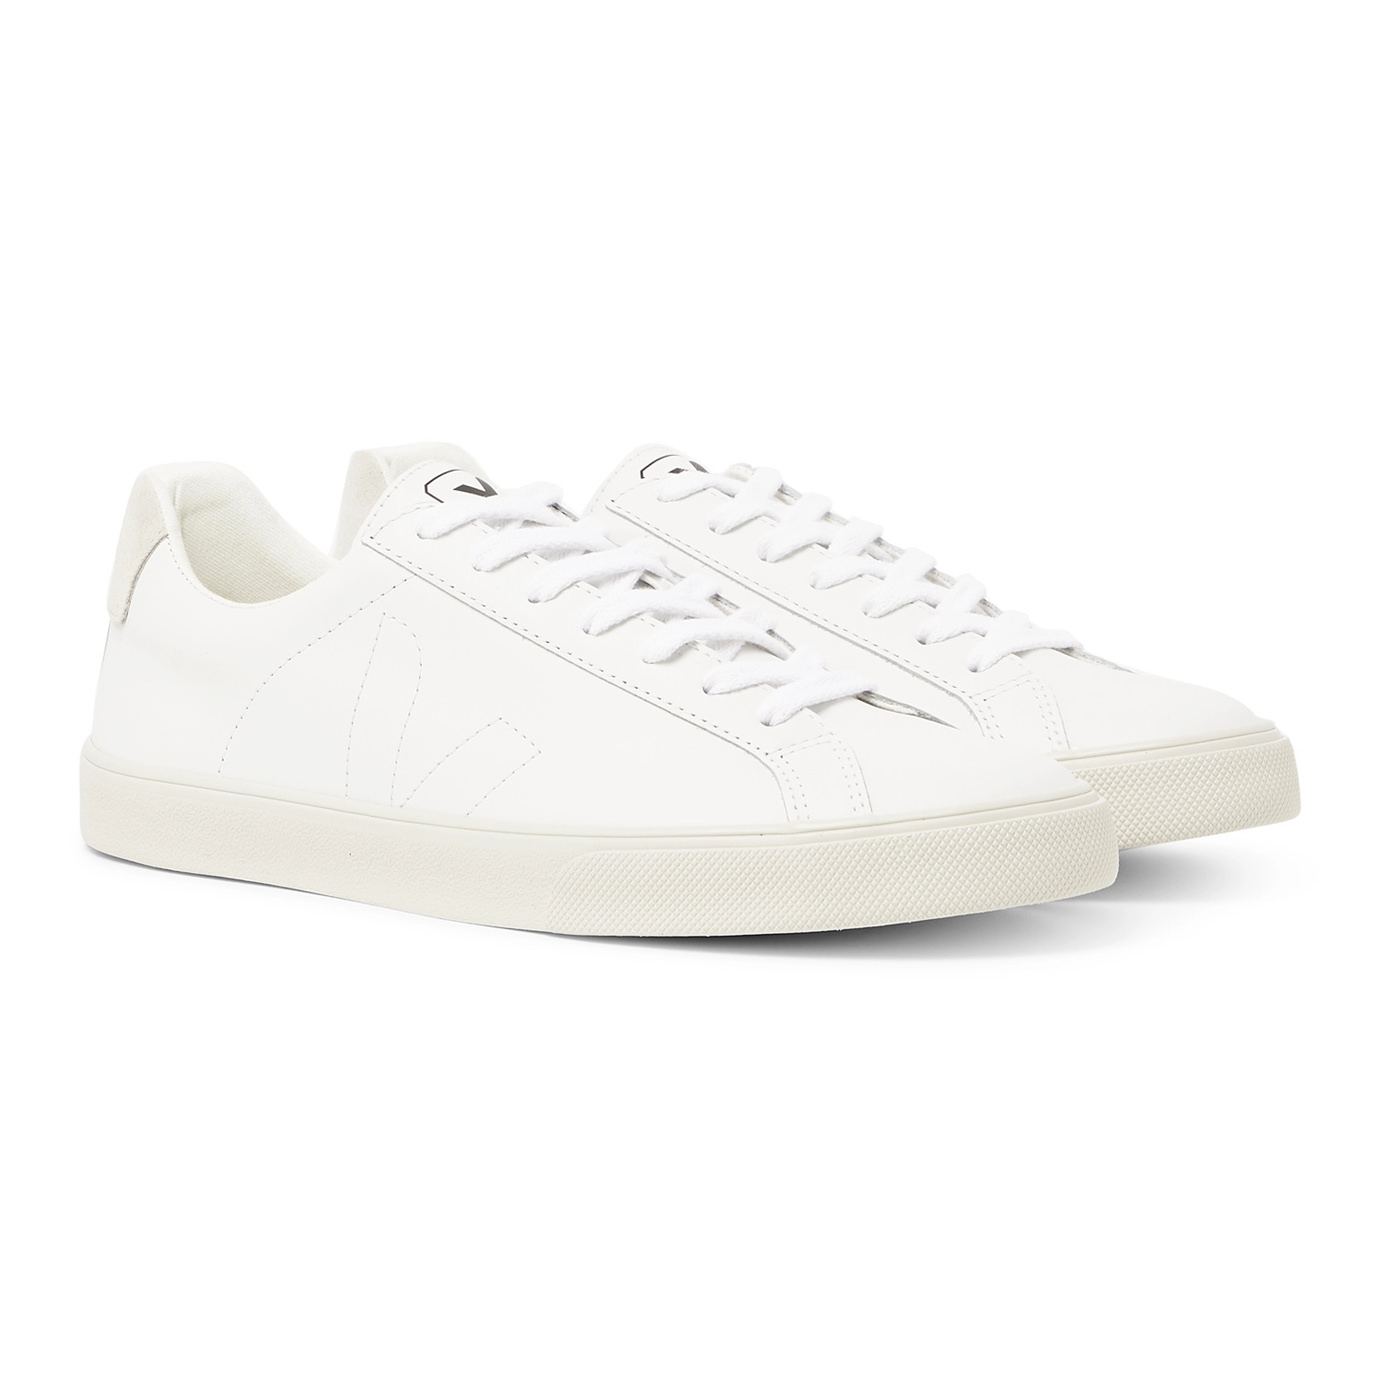 Style Mr Porter Sneakers Chaussures Veja Cuir Blanc